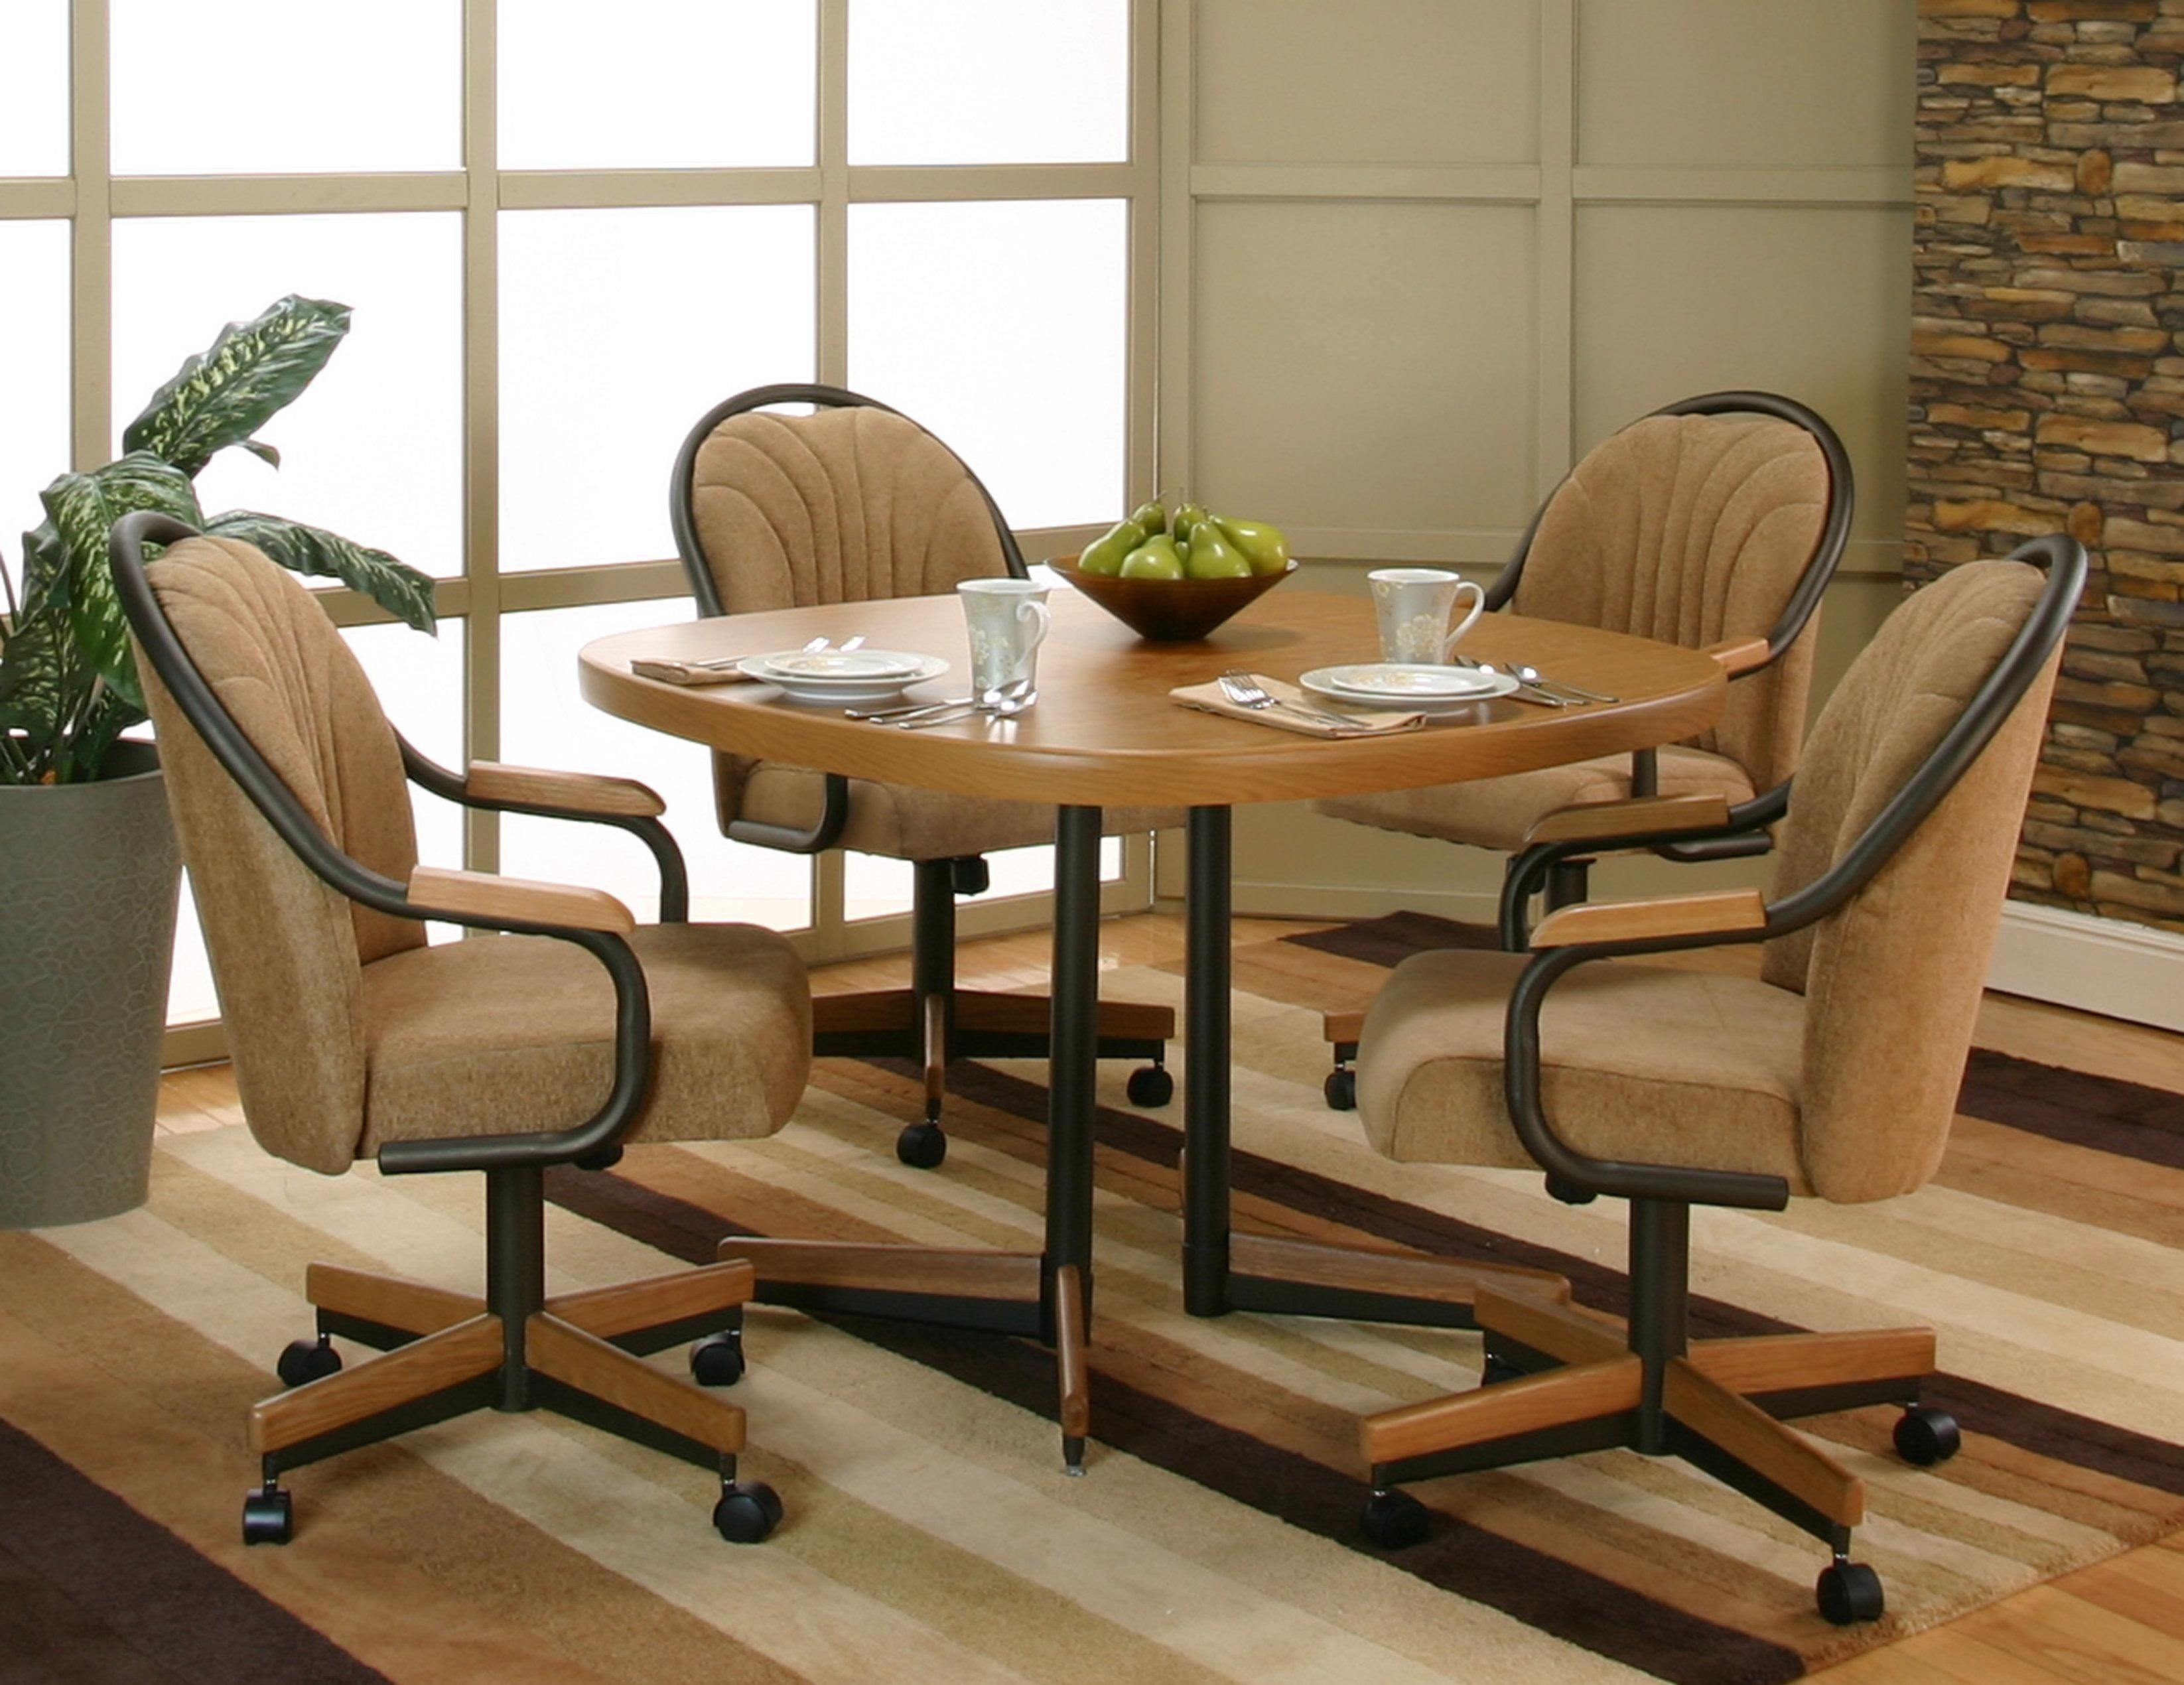 Swivel Dining Room Chairs Casters Dining Room Chairs Dining